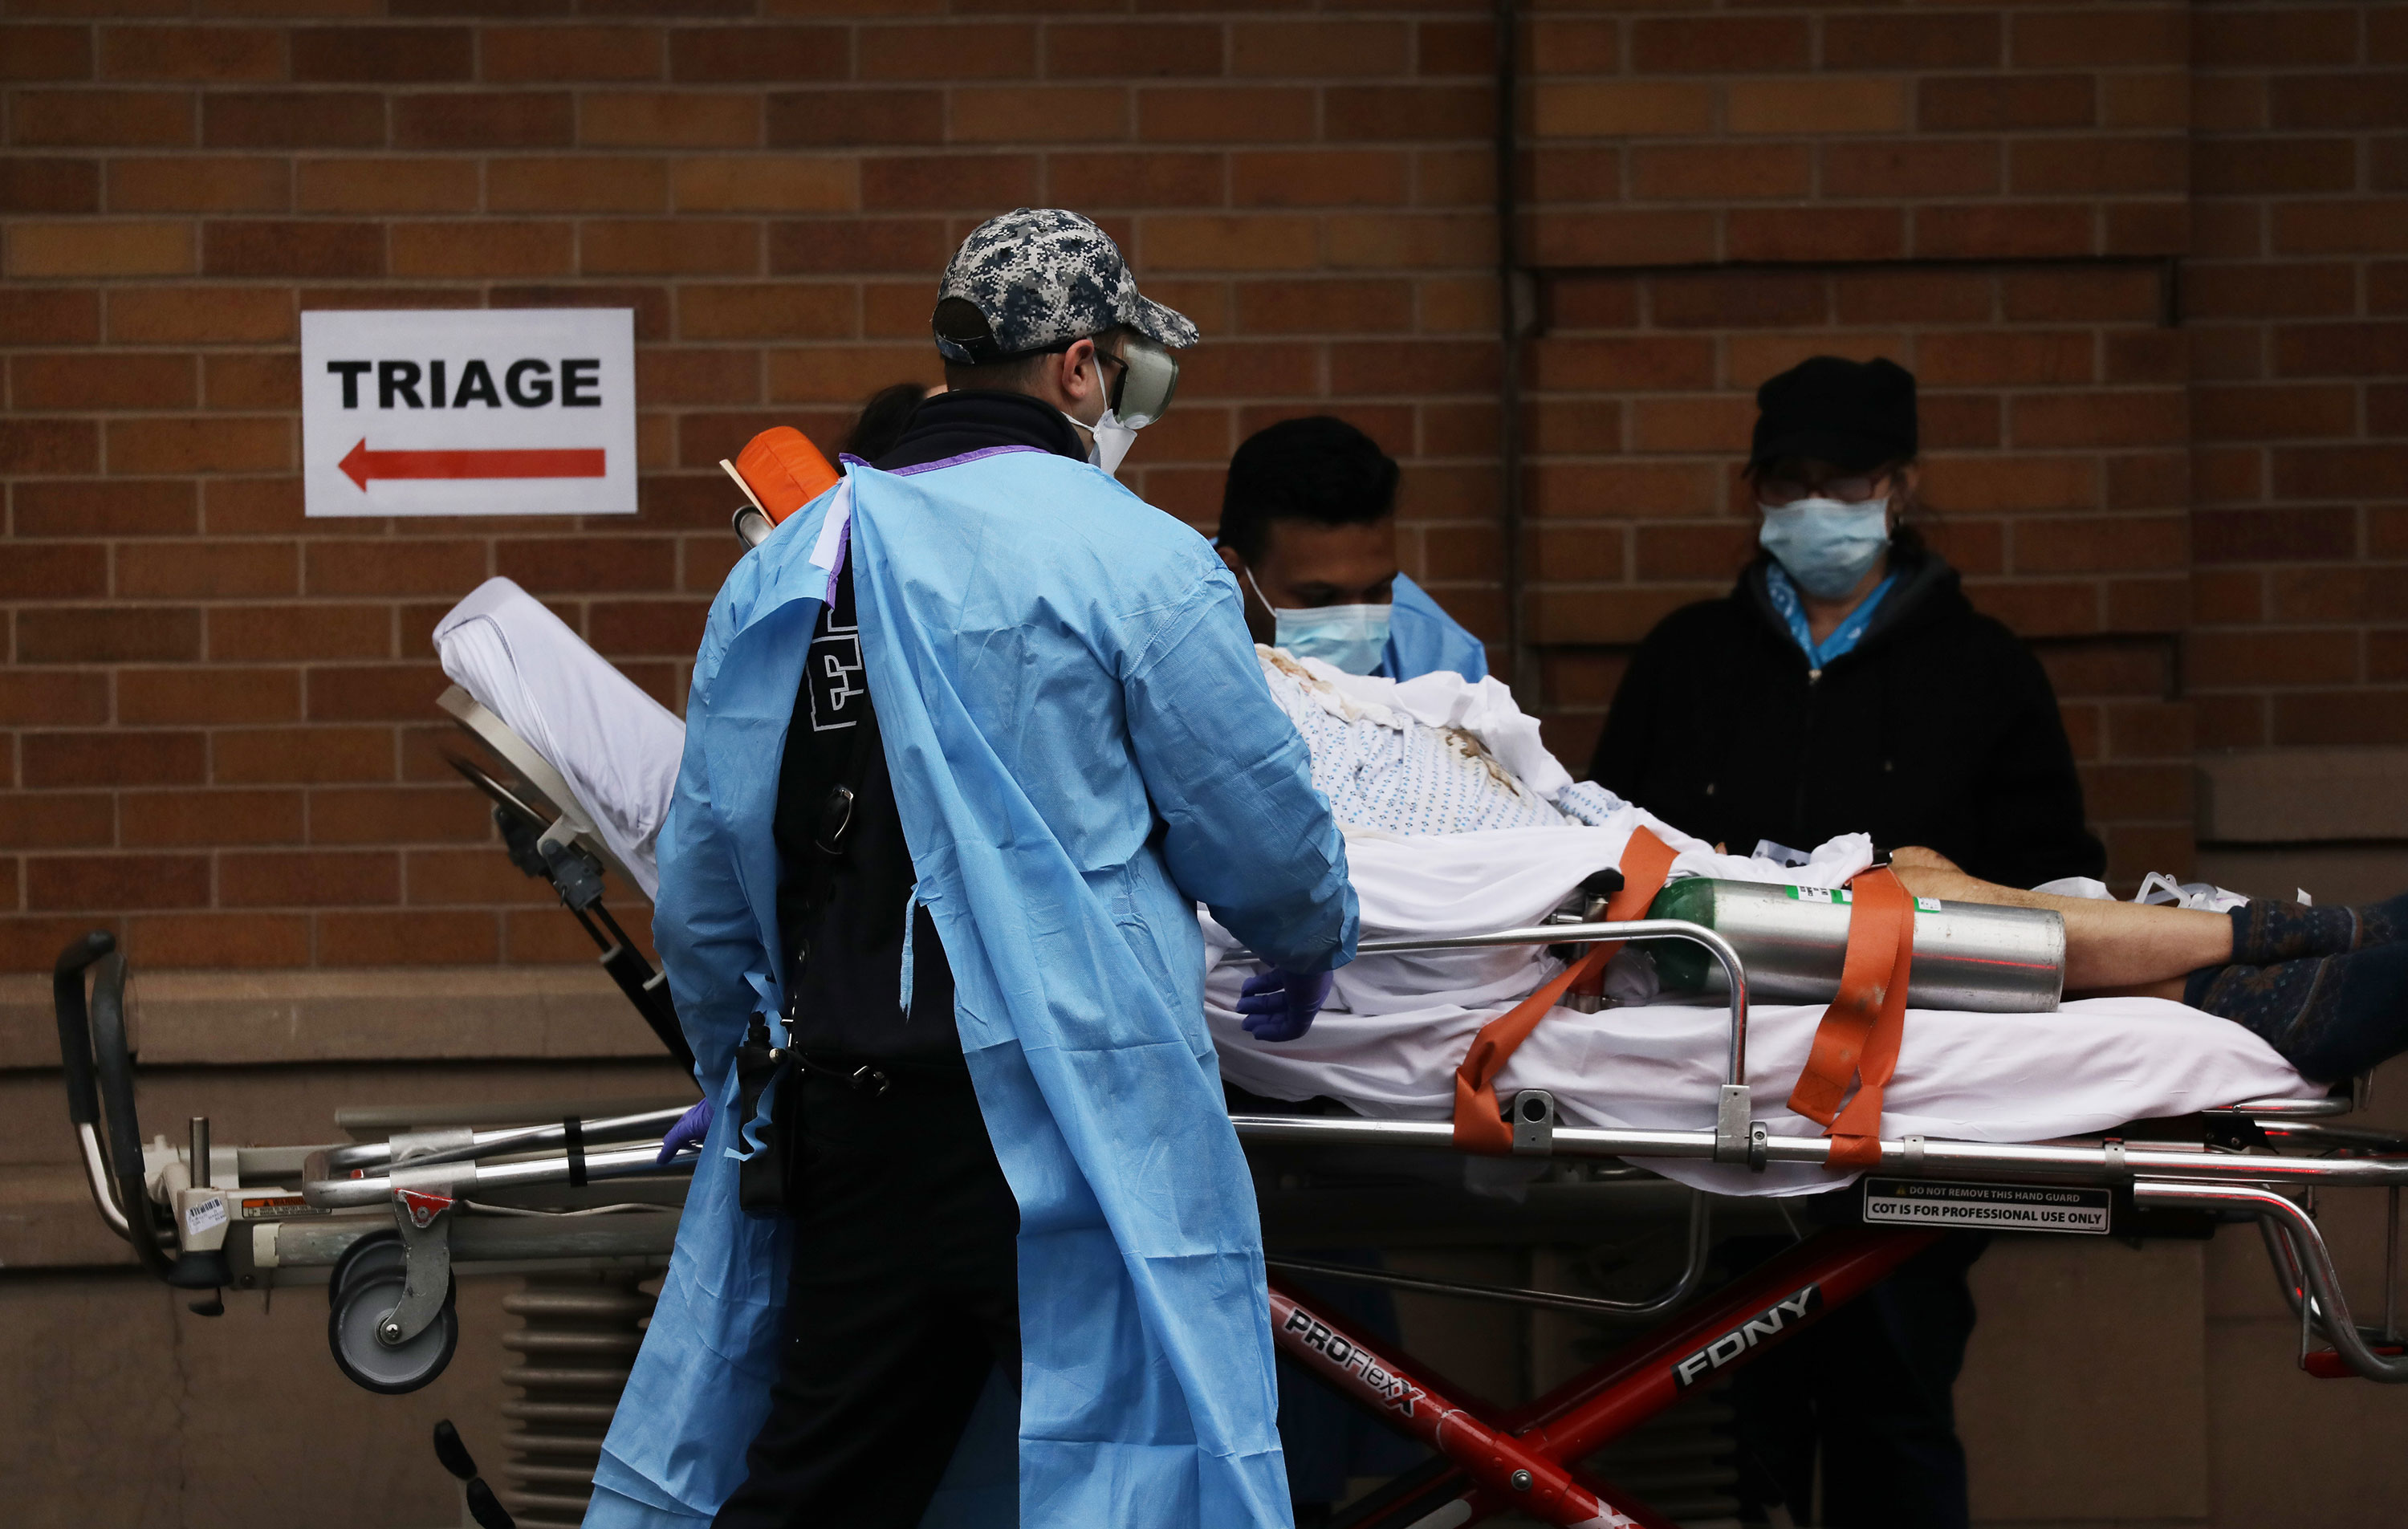 Medical workers move a patient to a special coronavirus intake area at Maimonides Medical Center in Brooklyn, New York on April 3.